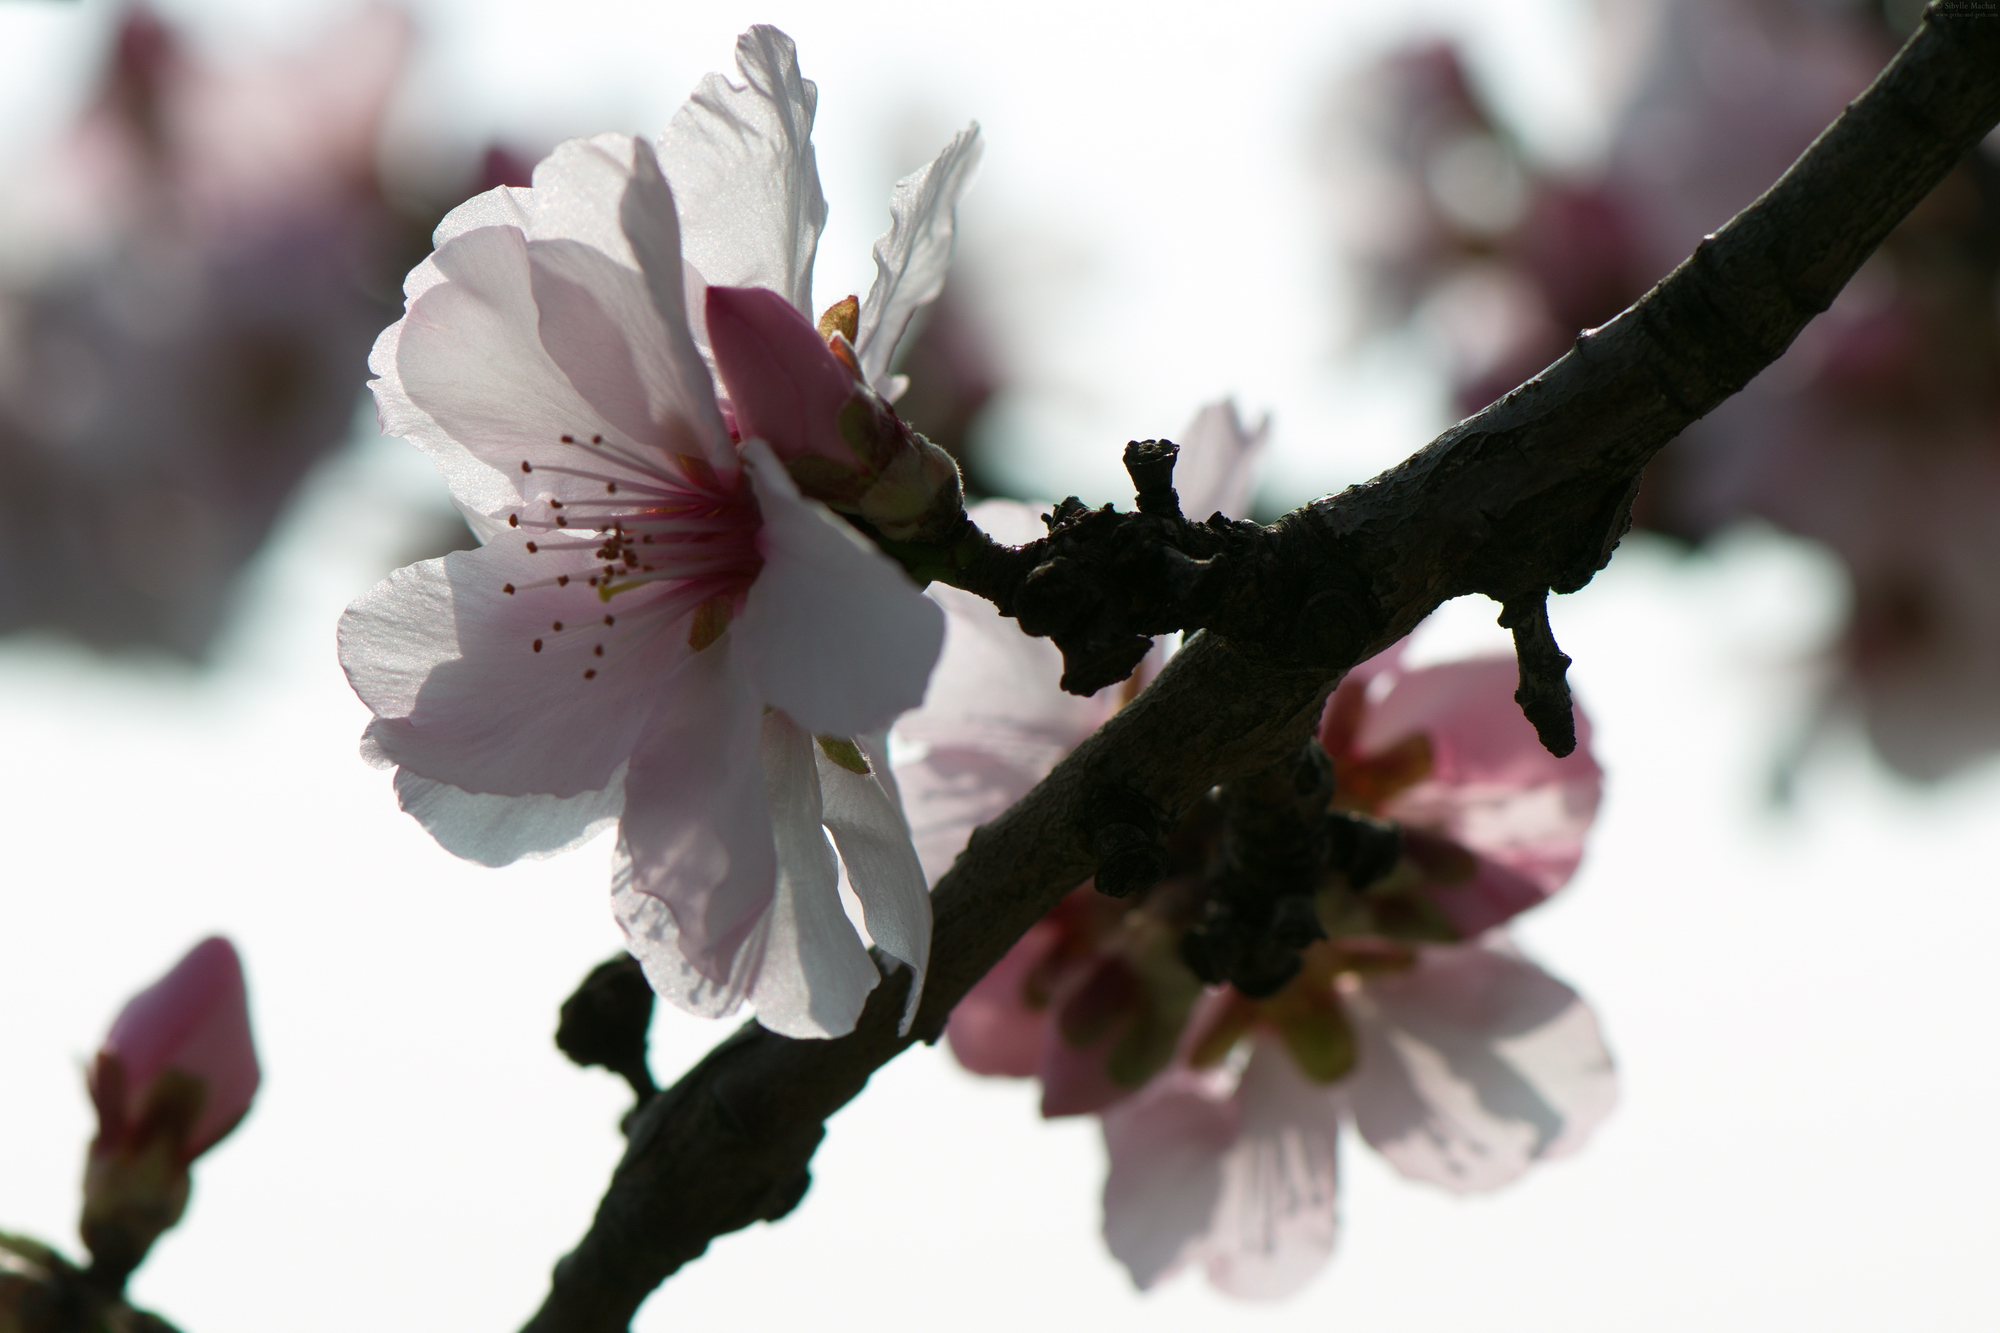 The almonds are in bloom